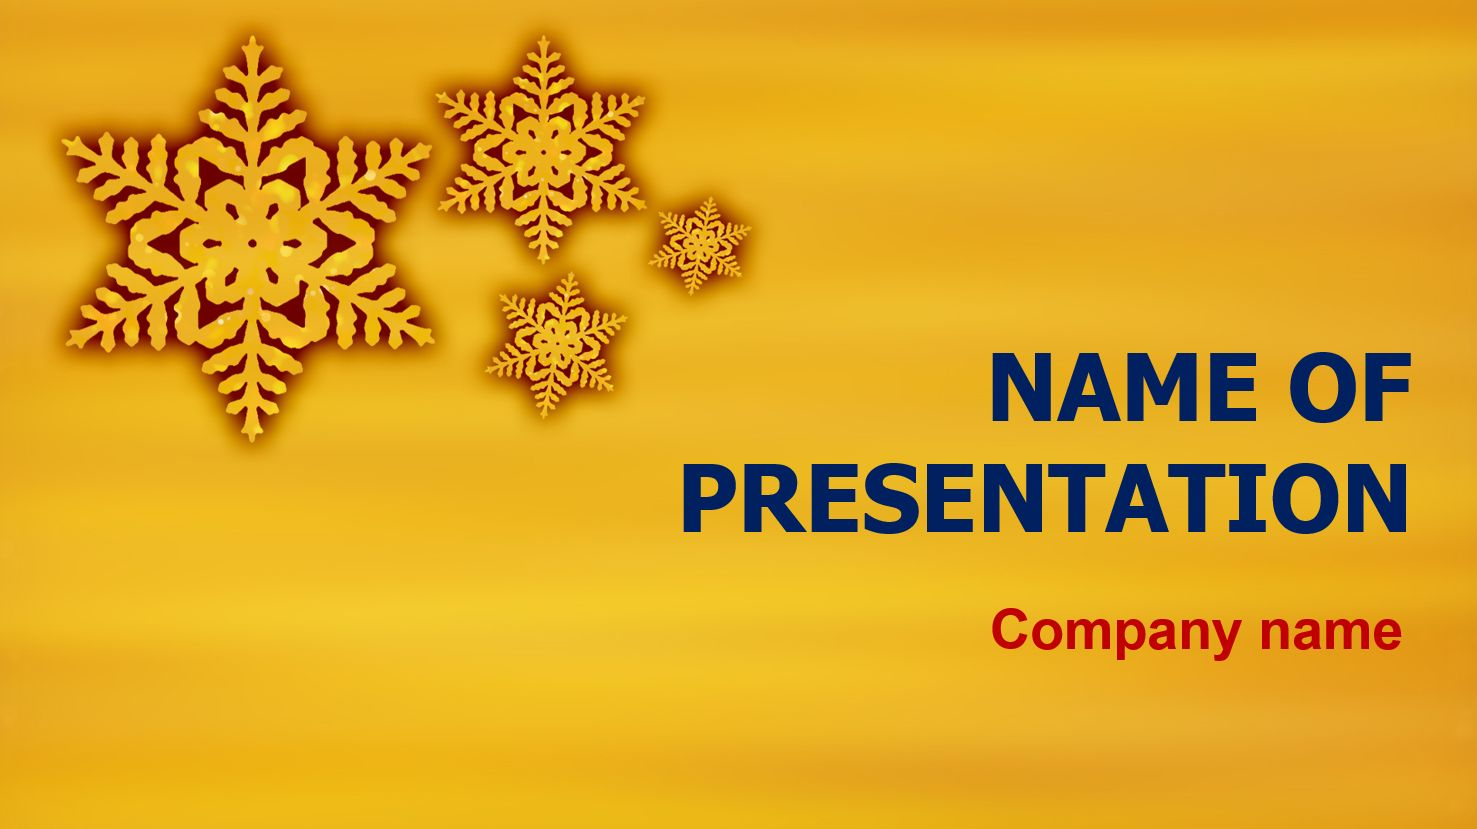 Free Gold Snowflakes Powerpoint Theme This Beautiful And Creative Powerpoint Theme Will Be A Great Choice Powerpoint Themes Gold Snowflake Creative Powerpoint